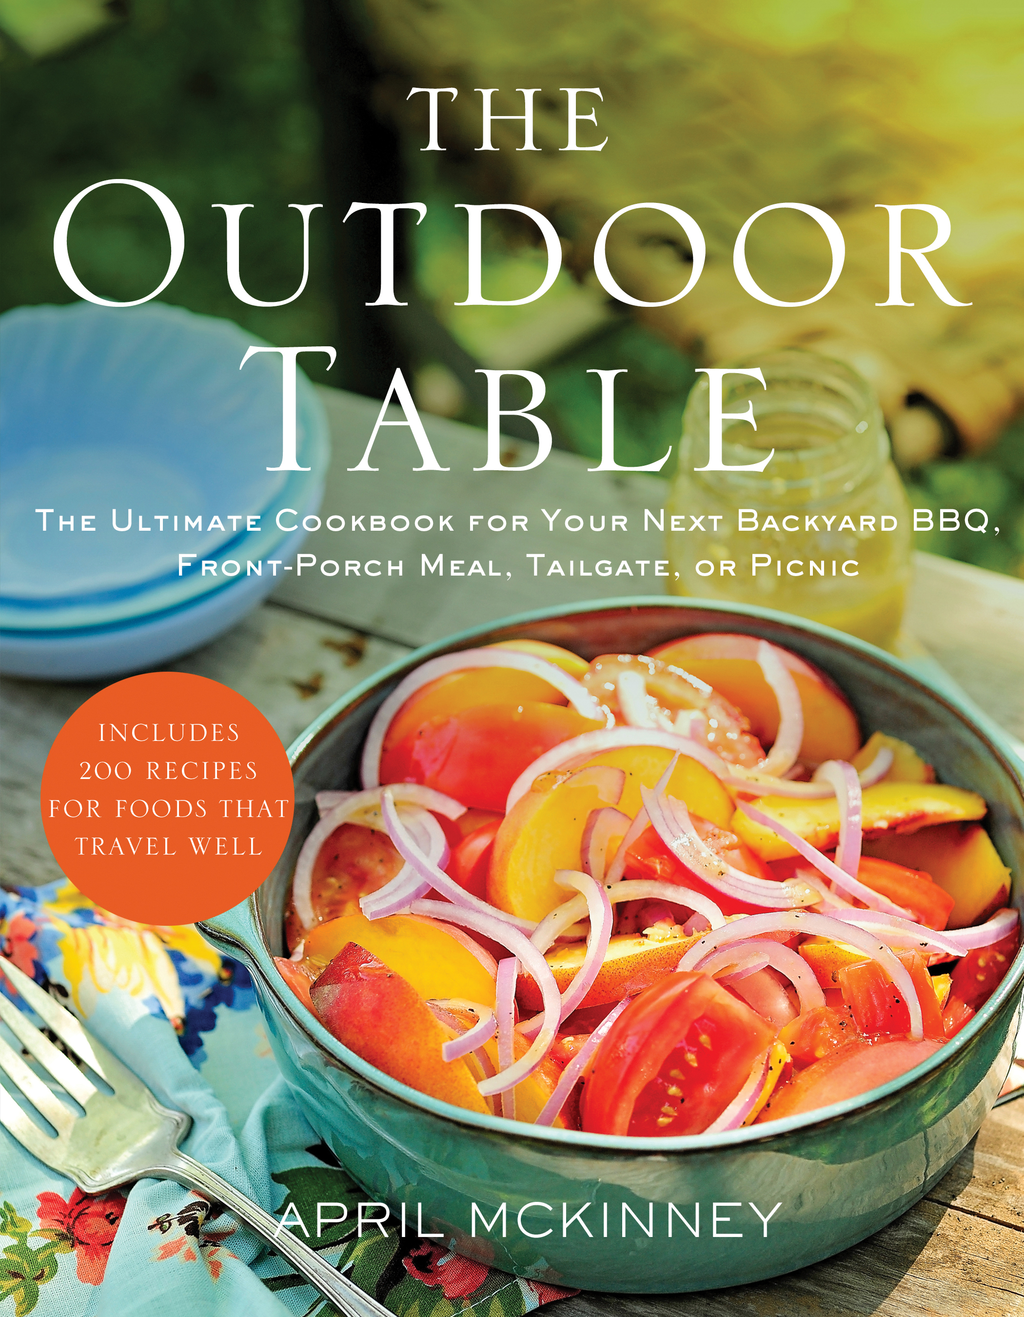 The Outdoor Table The Ultimate Cookbook for Your Next Backyard BBQ,  Front-Porch Meal,  Tailgate,  or Picnic